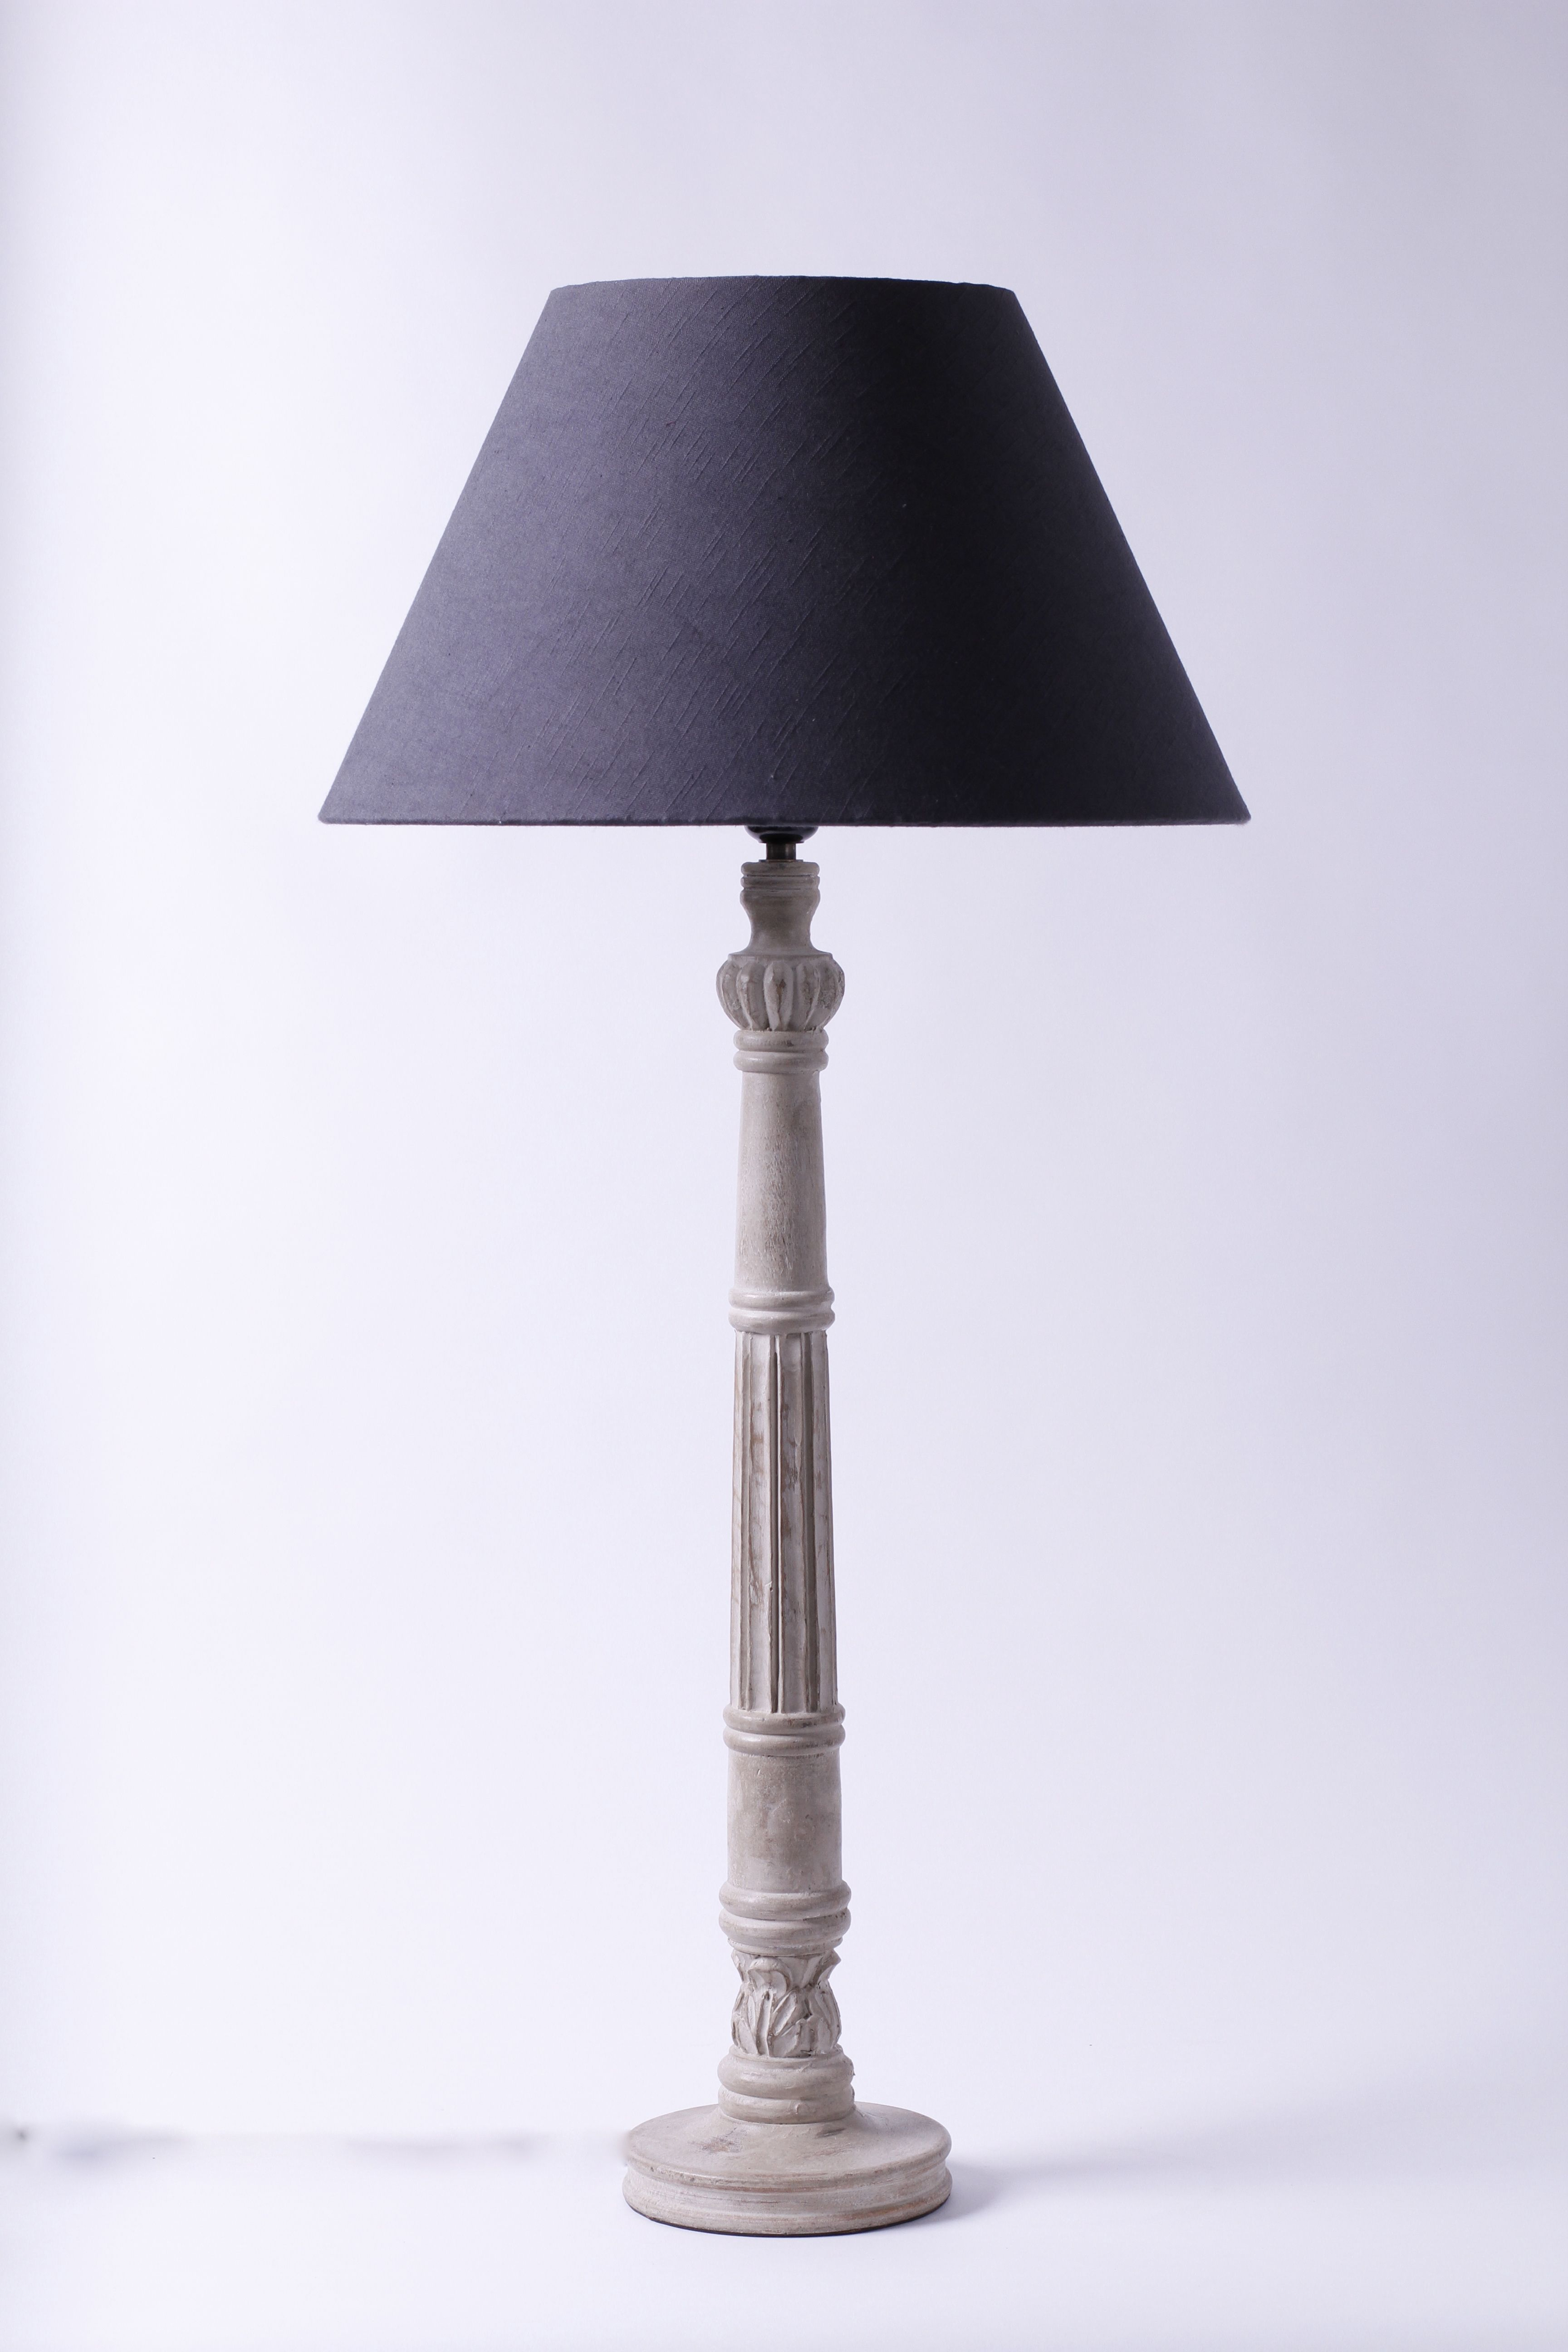 Tall And Elegant Table Lamp In Mango Wood S 230 90cm